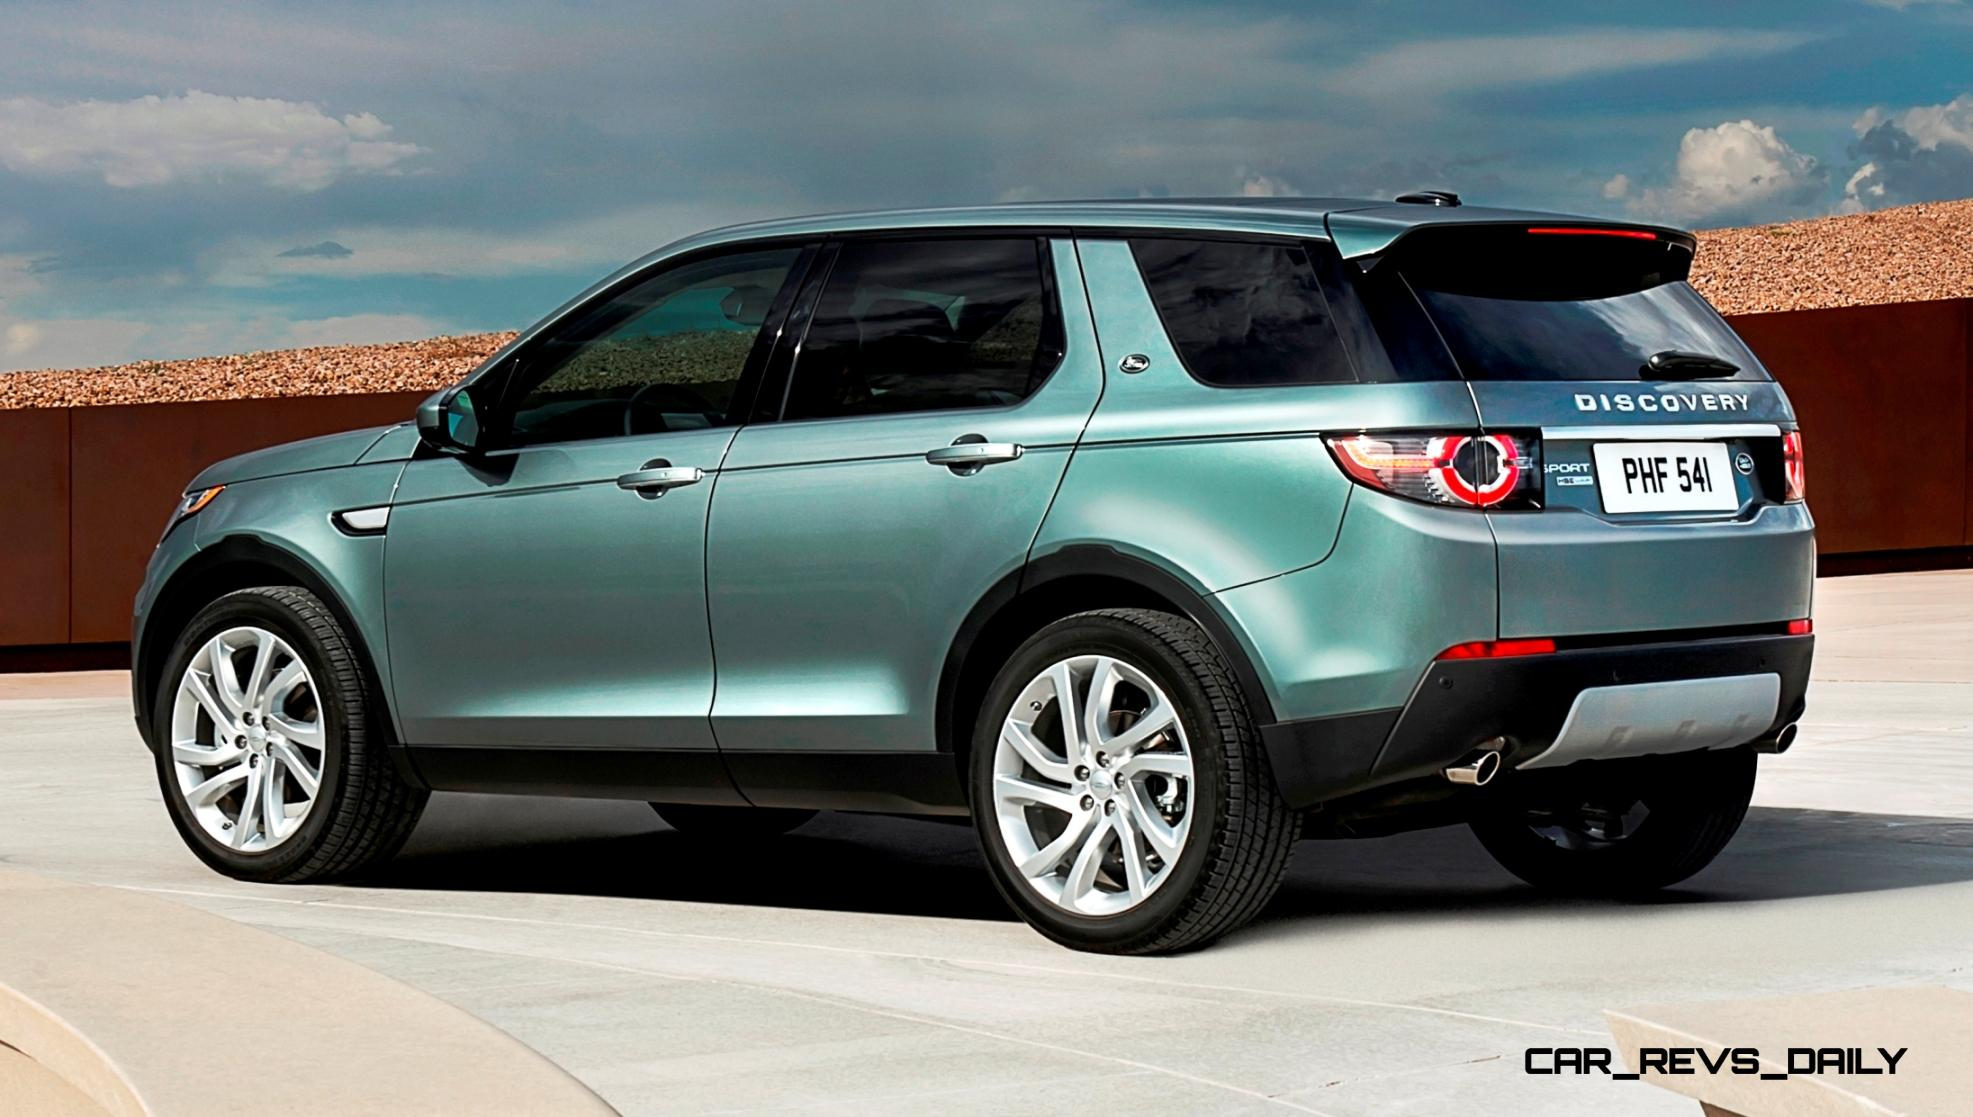 2015 Land Rover Discovery Sport is All New 5 2 Crossover from $38k